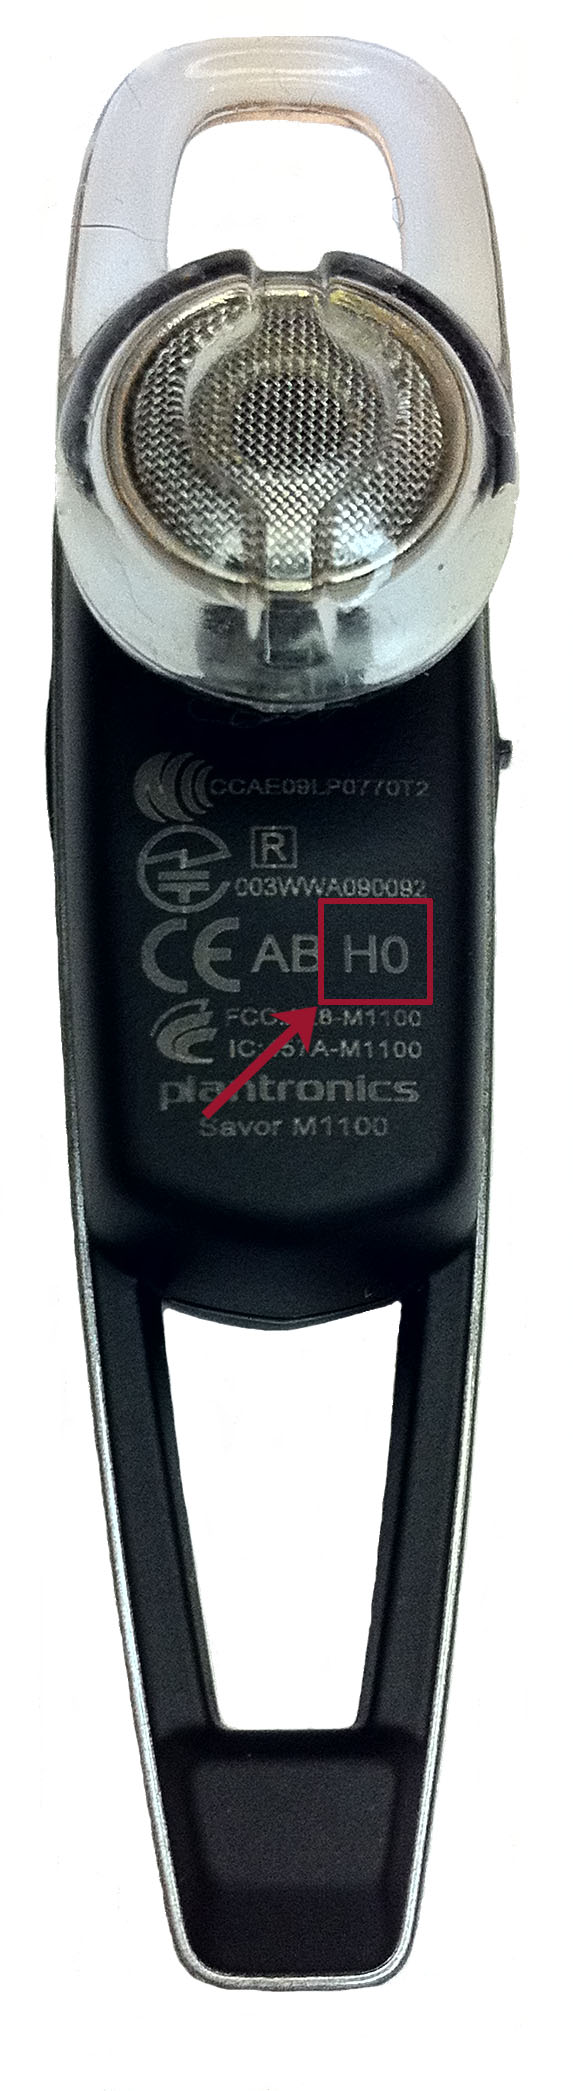 Date Code location for the M1100